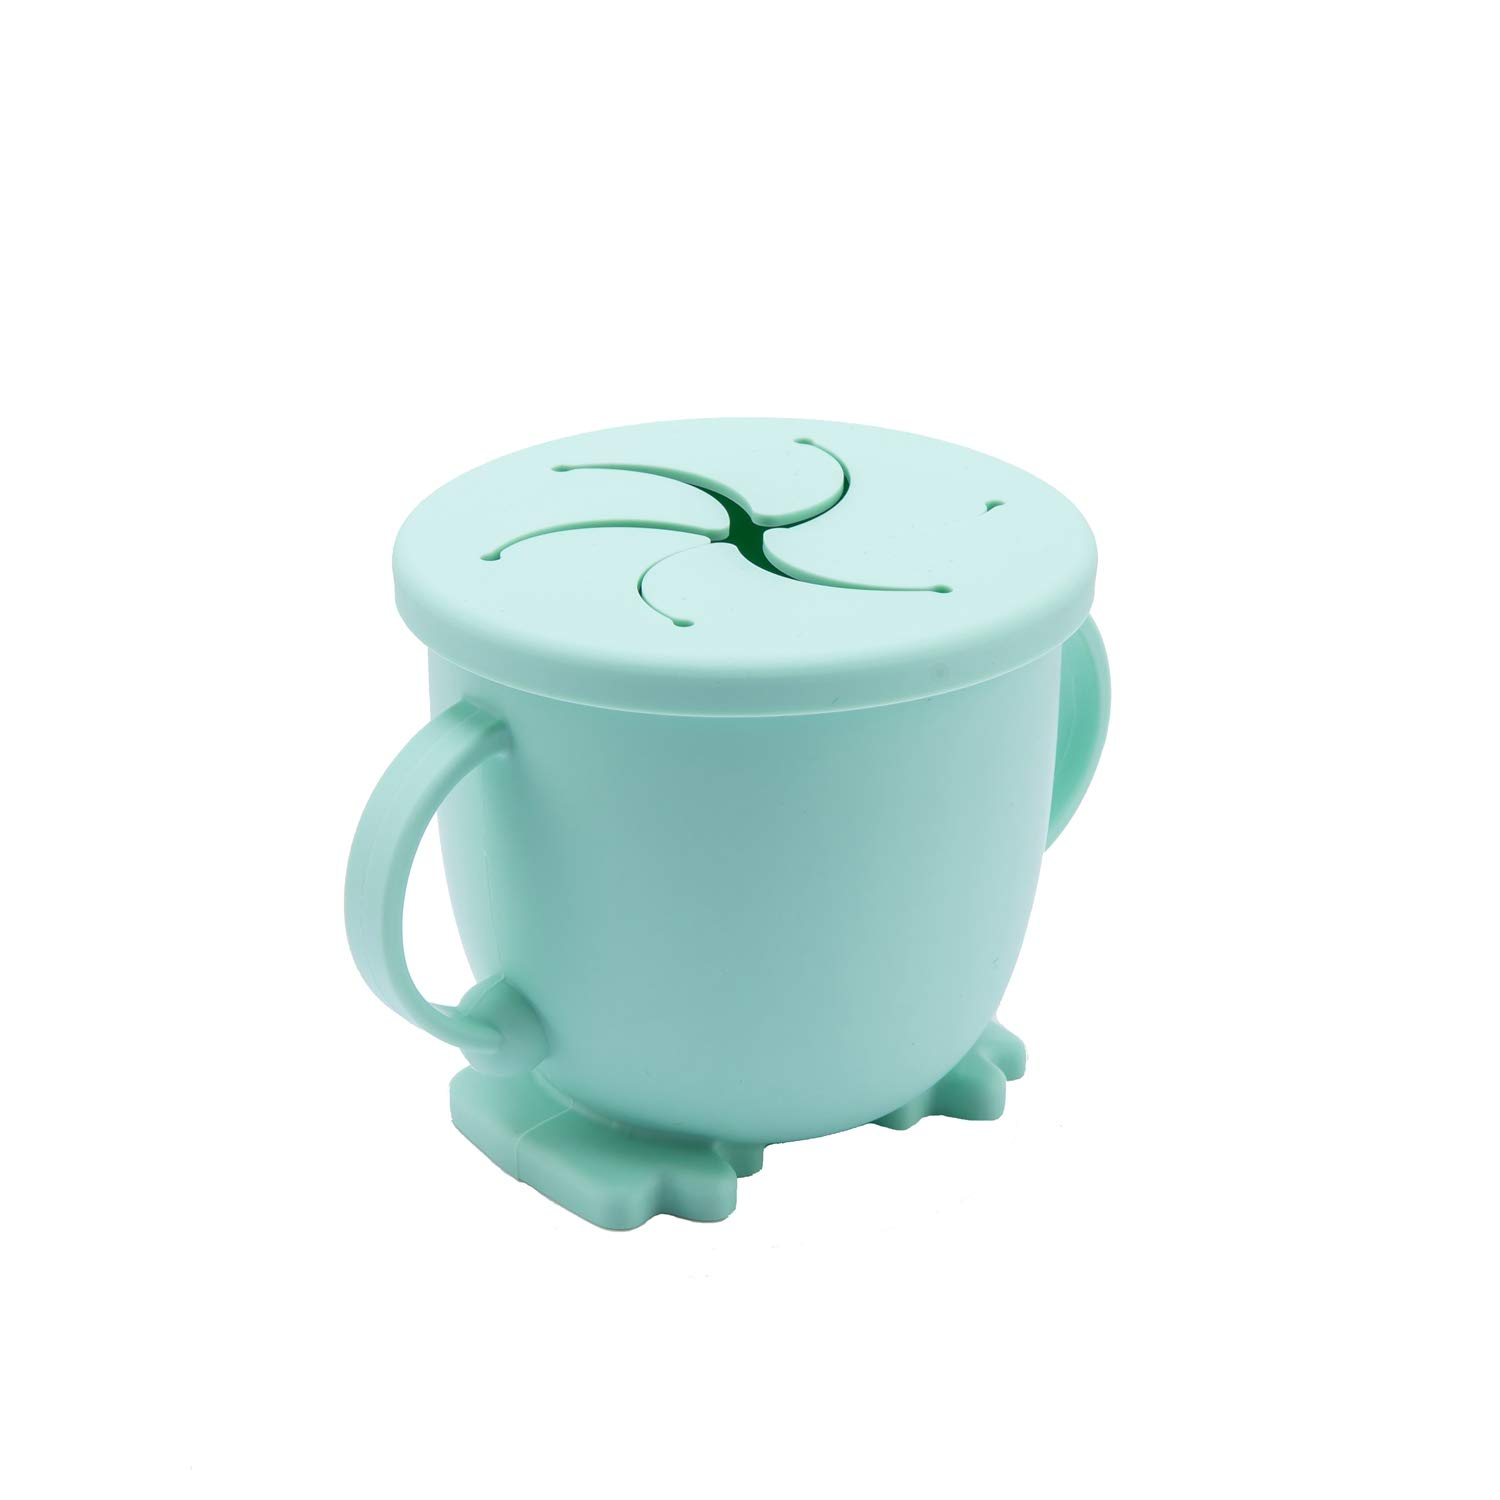 150ML Silicone Snack Cup with Travel Lid & Handles BPA Free Reusable Toddler Food Container Sensory Infant Snack Catcher Easy to Clean (Mint)